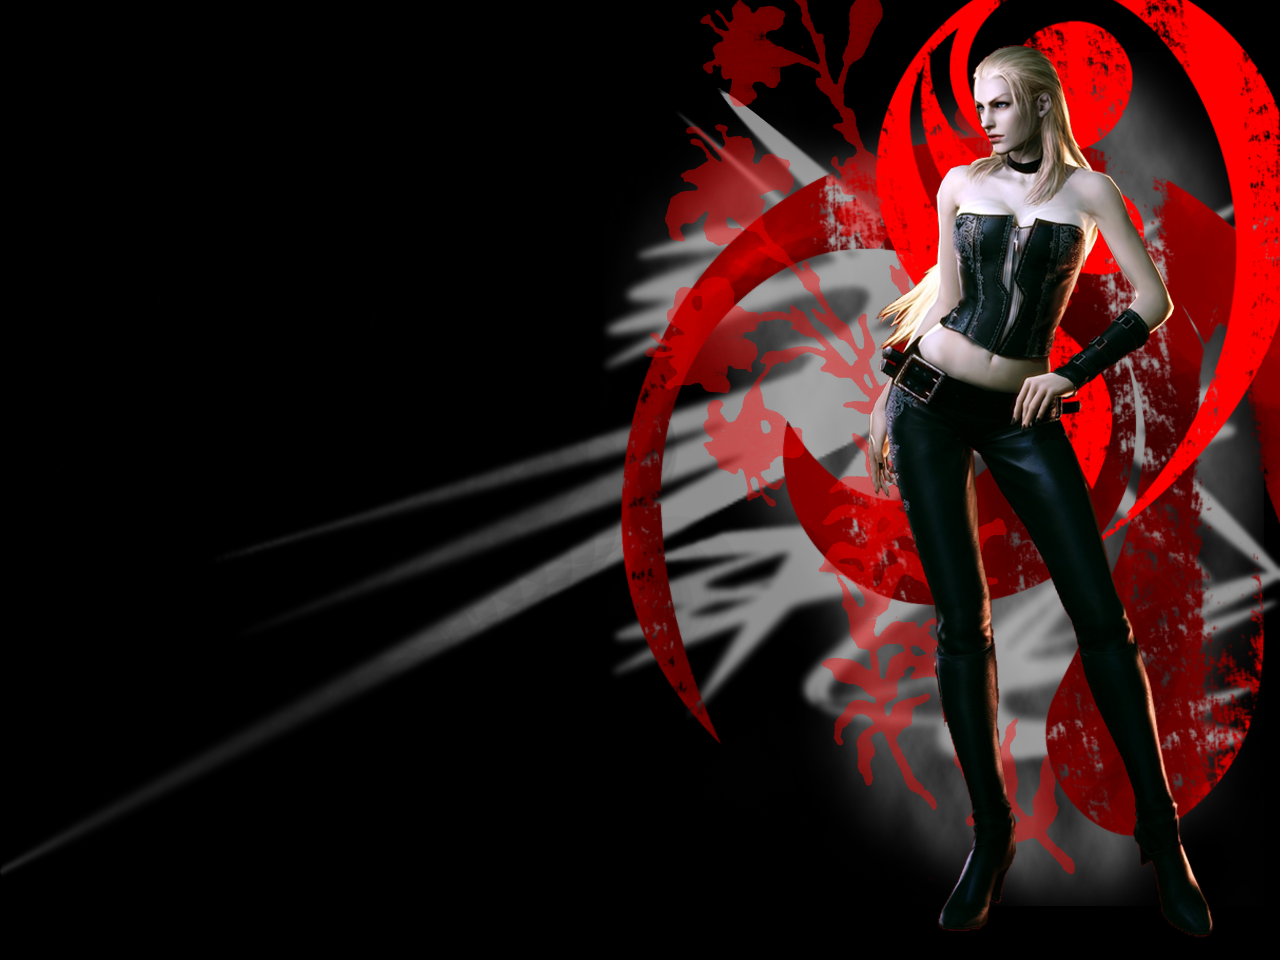 http://3.bp.blogspot.com/-jWVBdkW3AT0/T-0yGI-7w8I/AAAAAAAAAO4/nv6Q_FOgdL0/s1600/Trish_Devil_May_Cry_Wallpaper_by-1.png